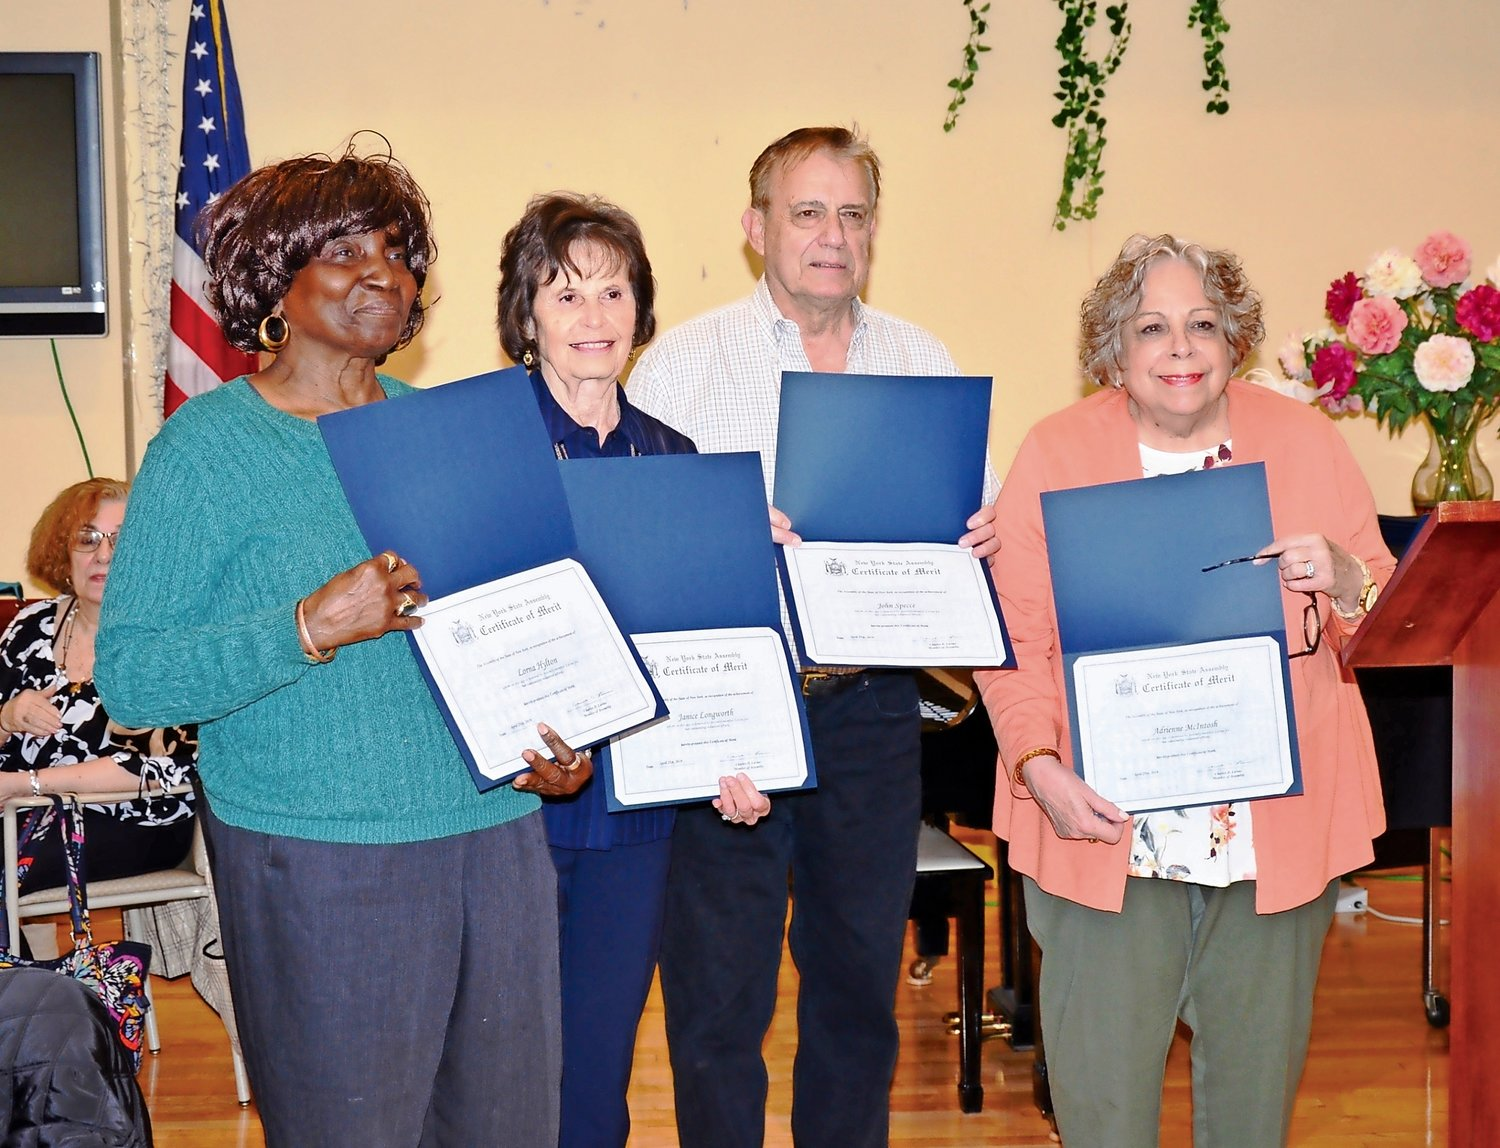 It was a proud day for Lorna Hylton, left, Janice Longworth, John Speece and Adrienne McIntosh, who were recognized for their volunteerism.